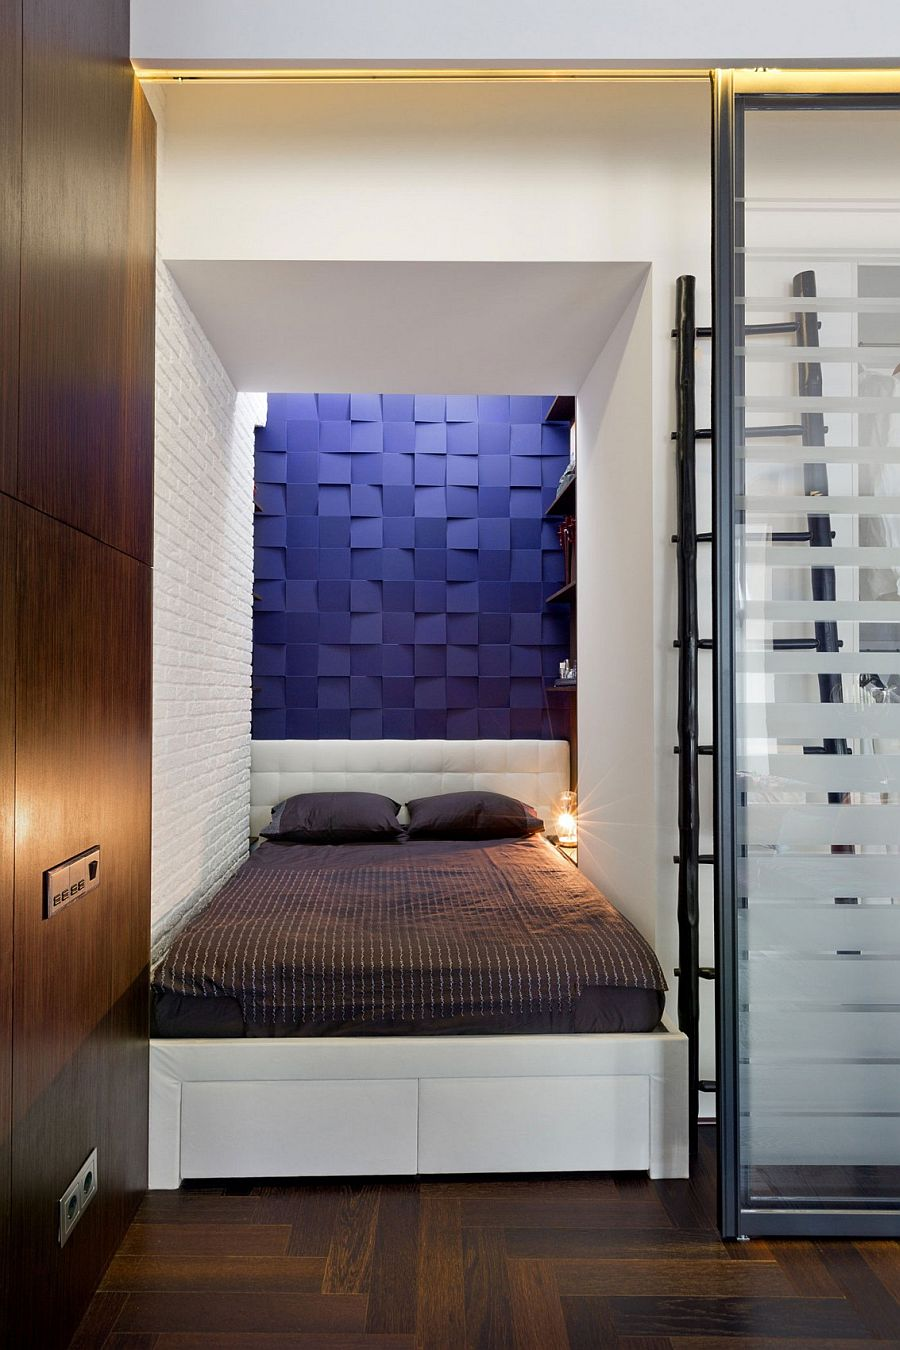 Small-niche-turned-into-a-tiny-bedroom-with-3D-blue-panels-on-the-wall